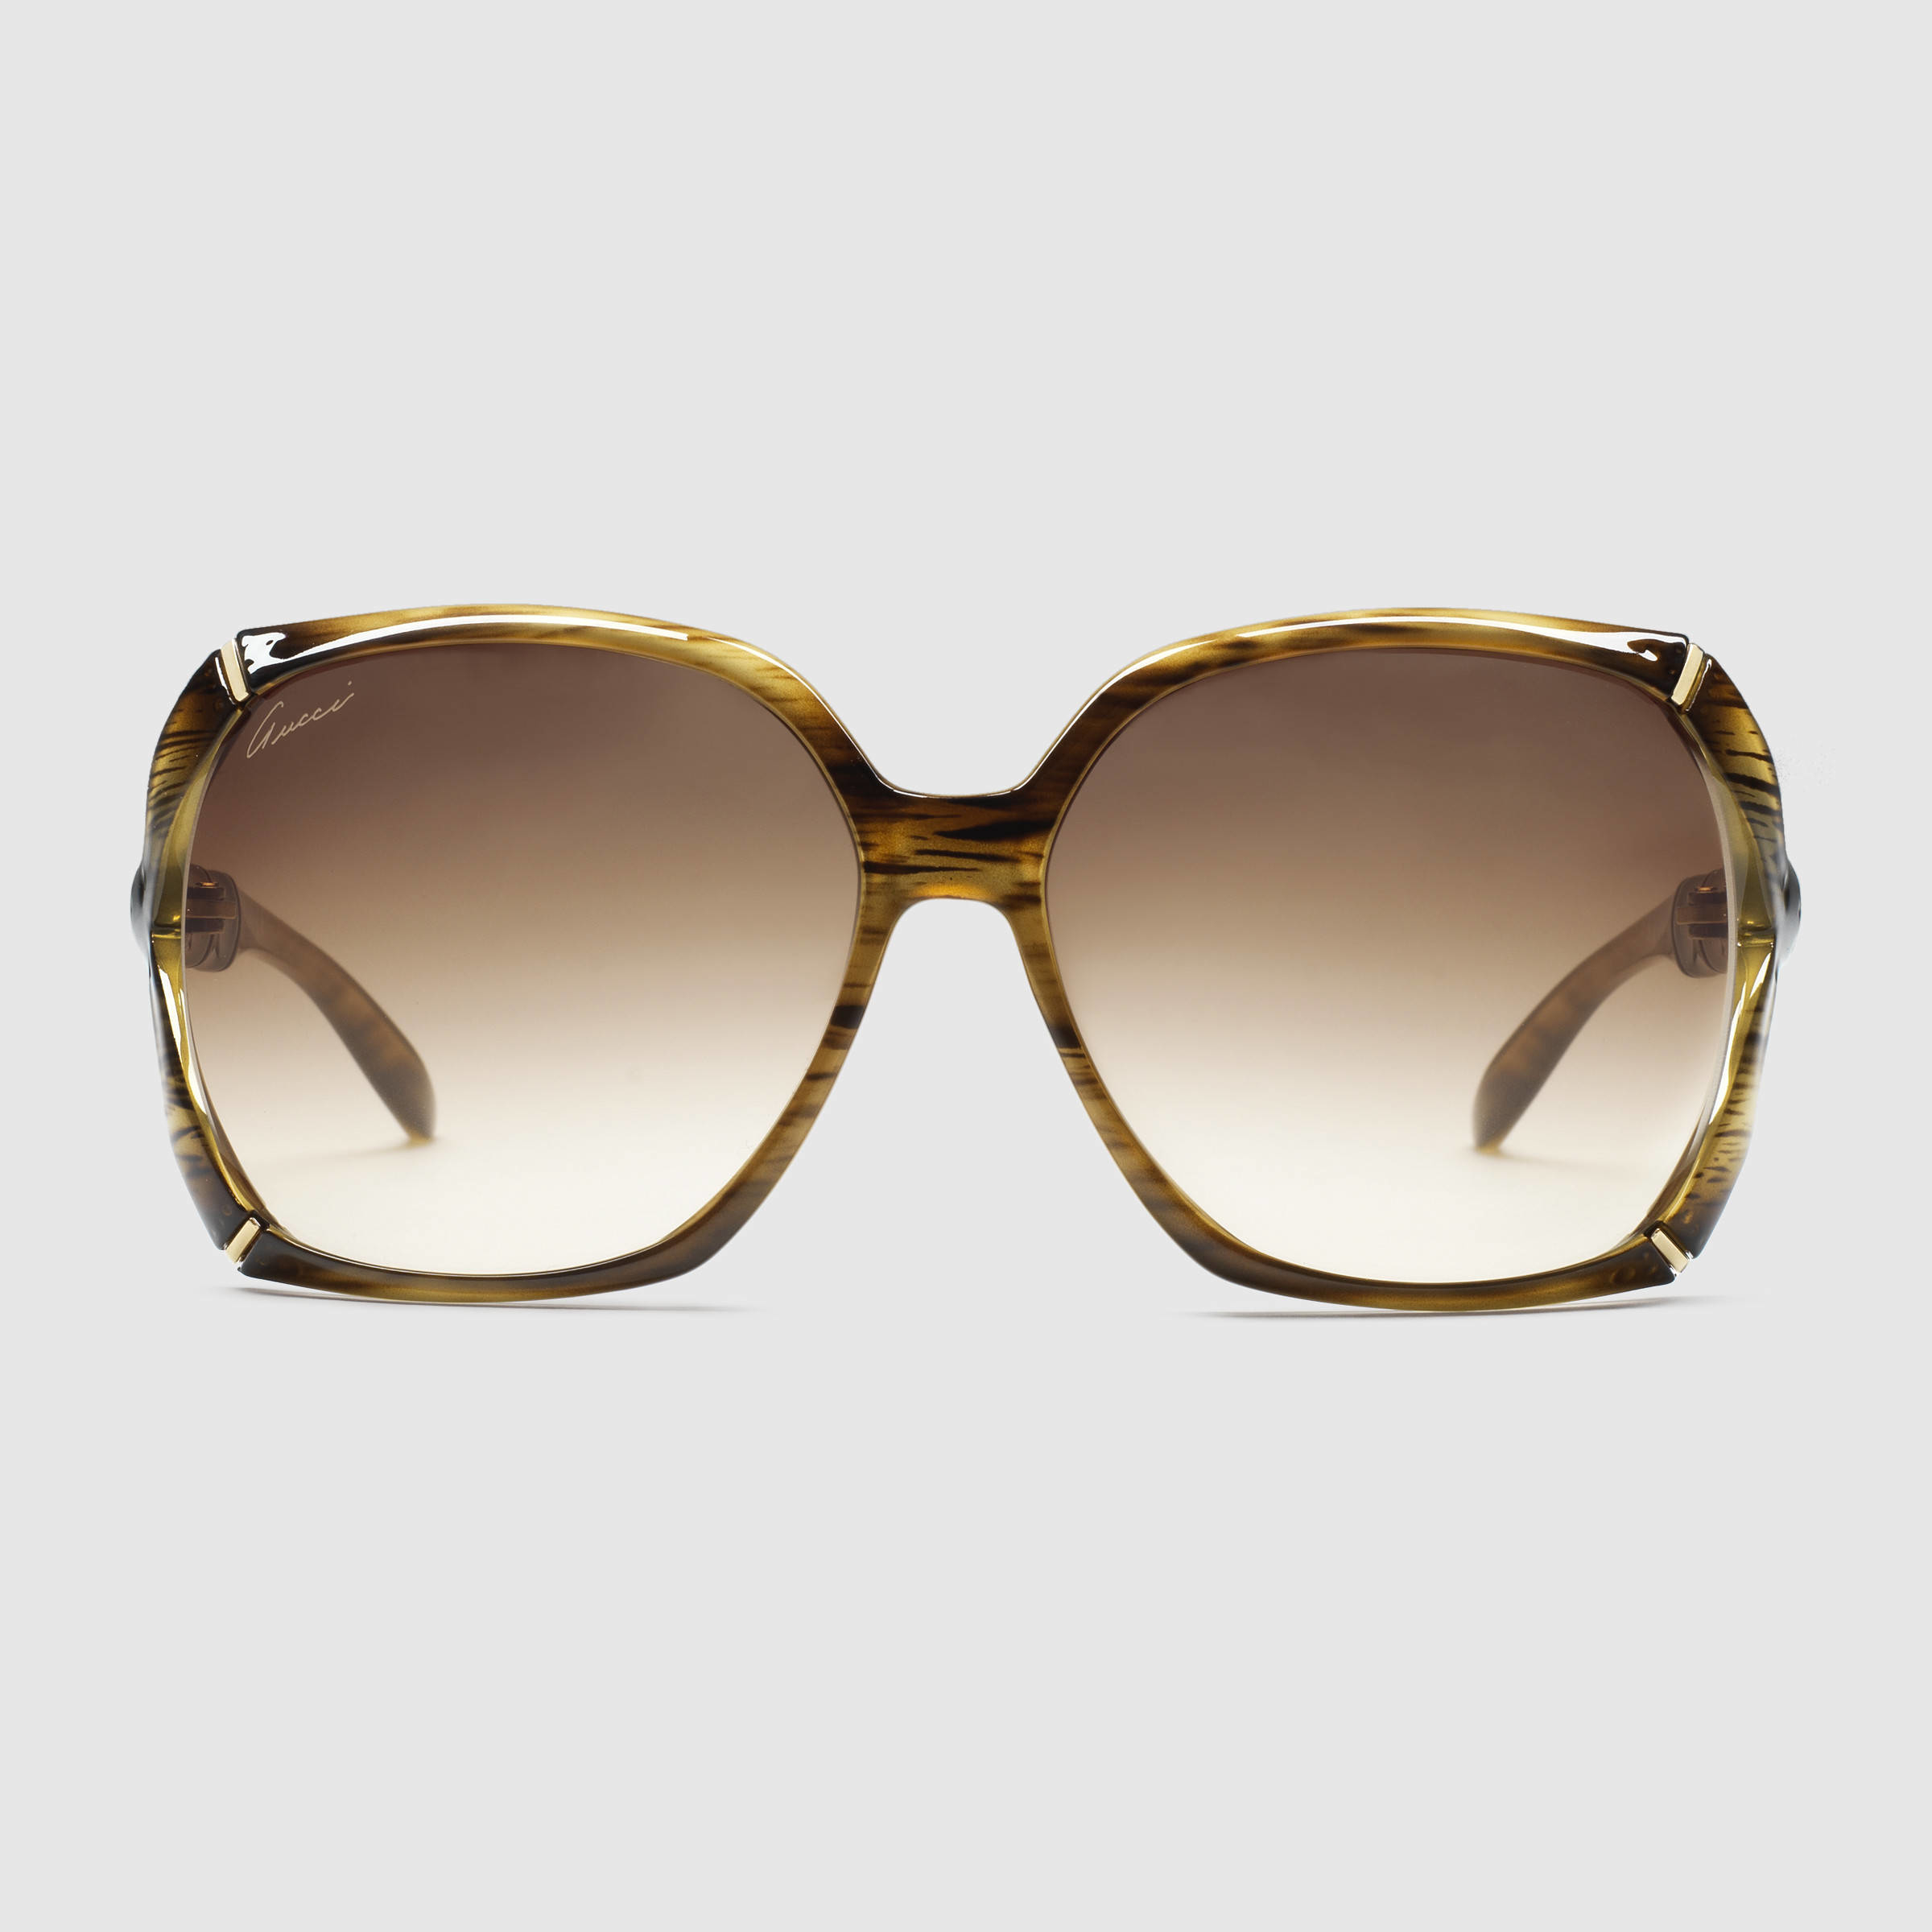 3f50f1ee571 Lyst - Gucci Square Sunglasses With Bamboo Effect in Brown